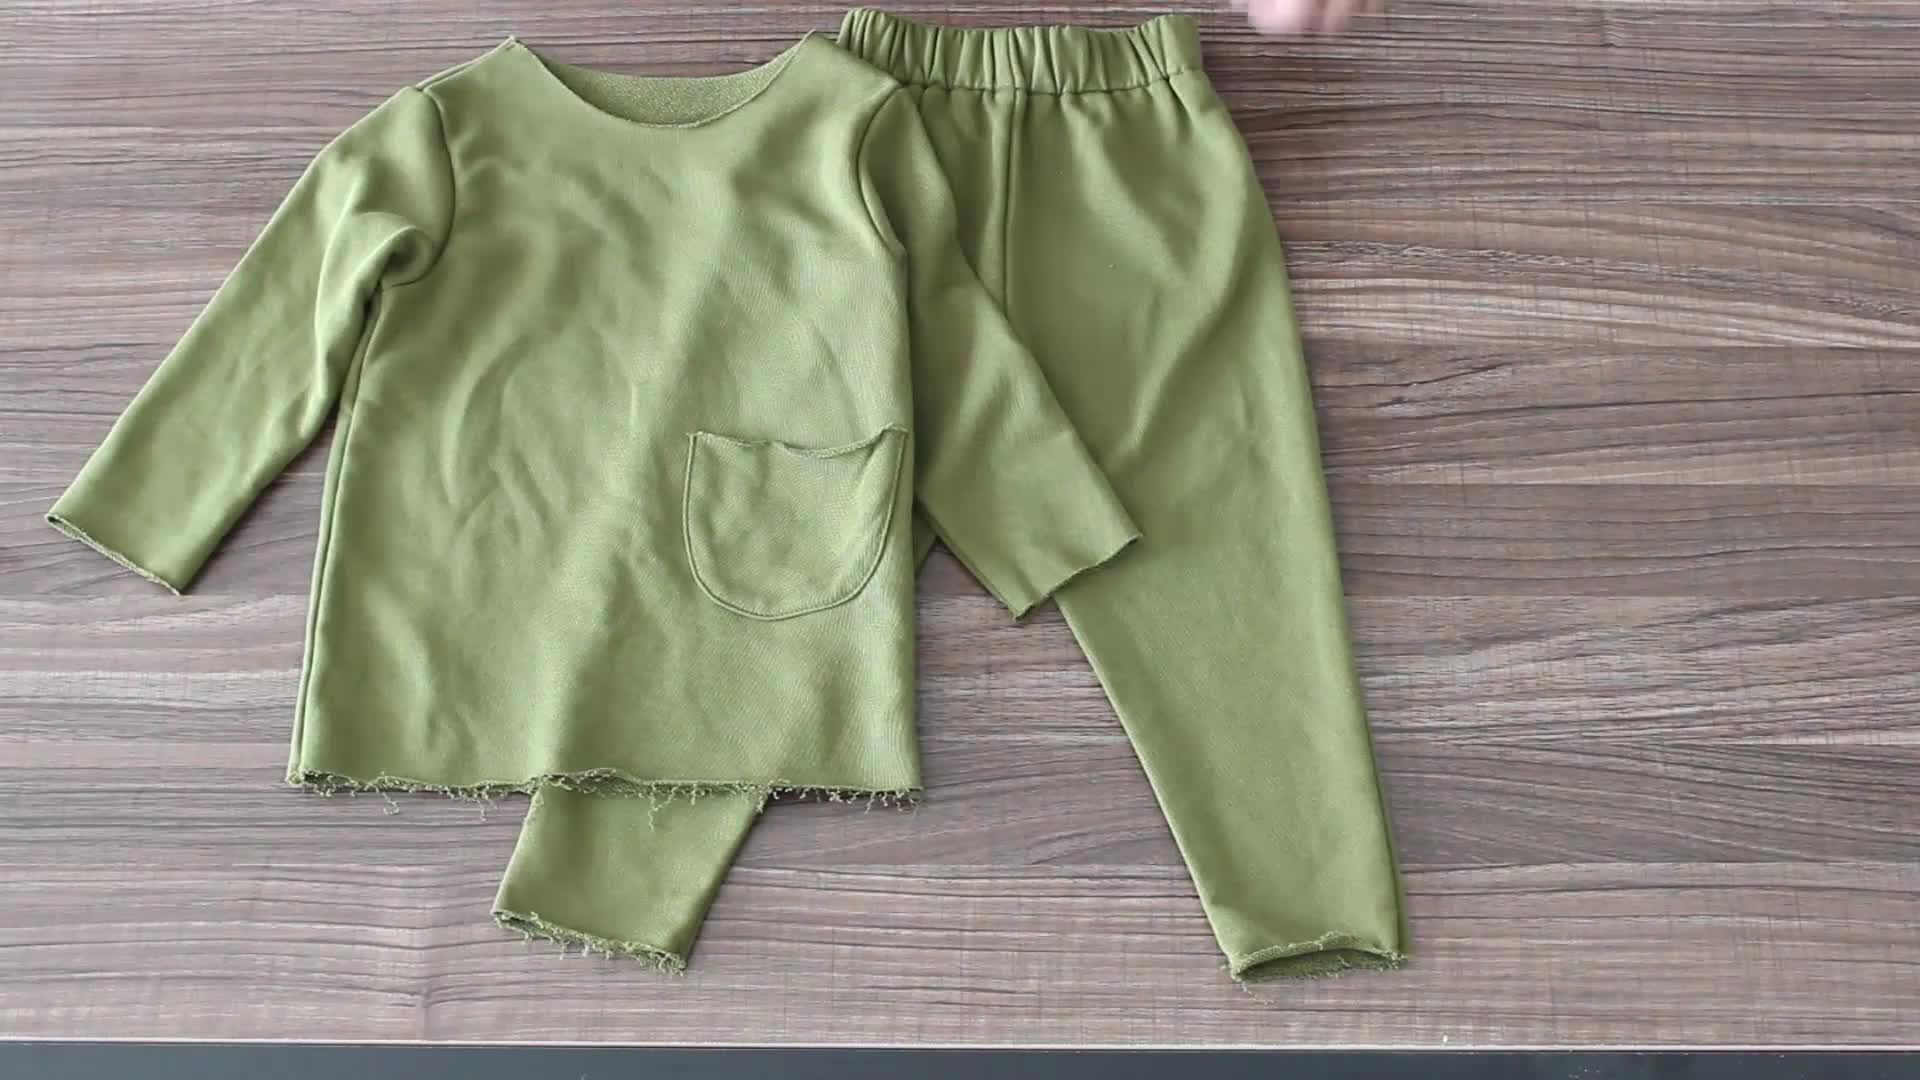 baby set care terry cotton plain clothes thick organic cotton newborn baby kids clothing sets